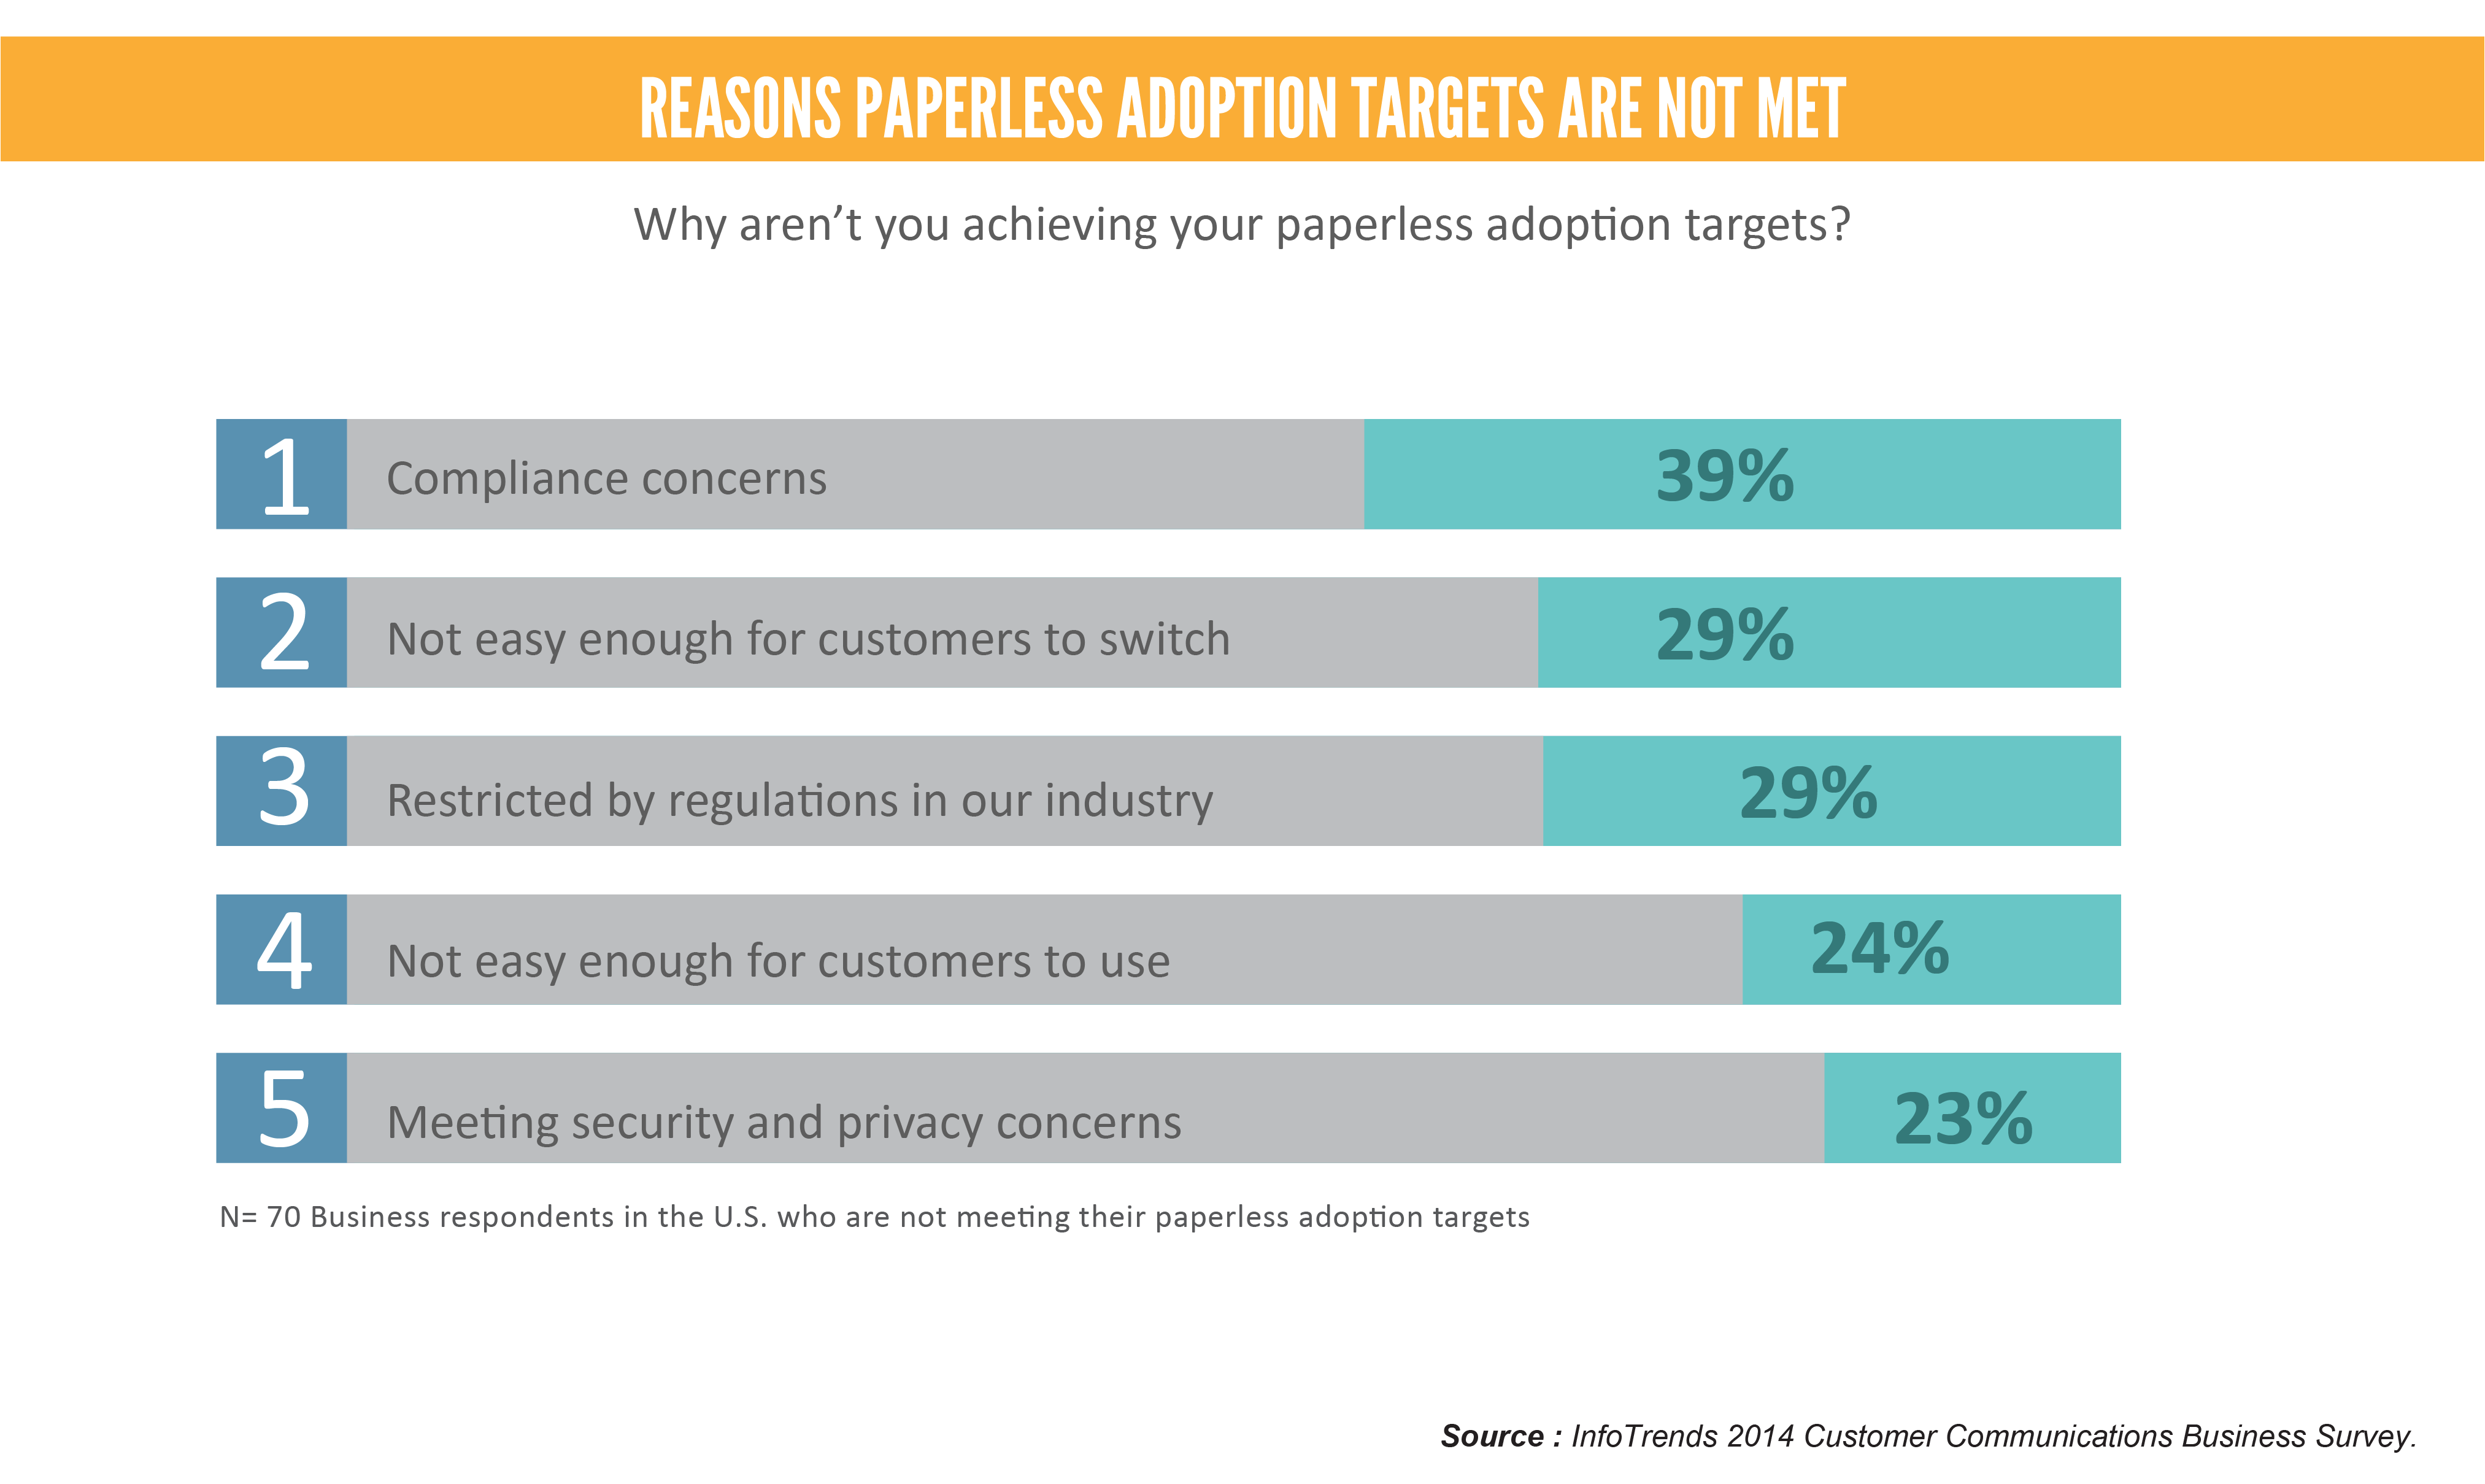 Reasons paperless adoptions targets are not met